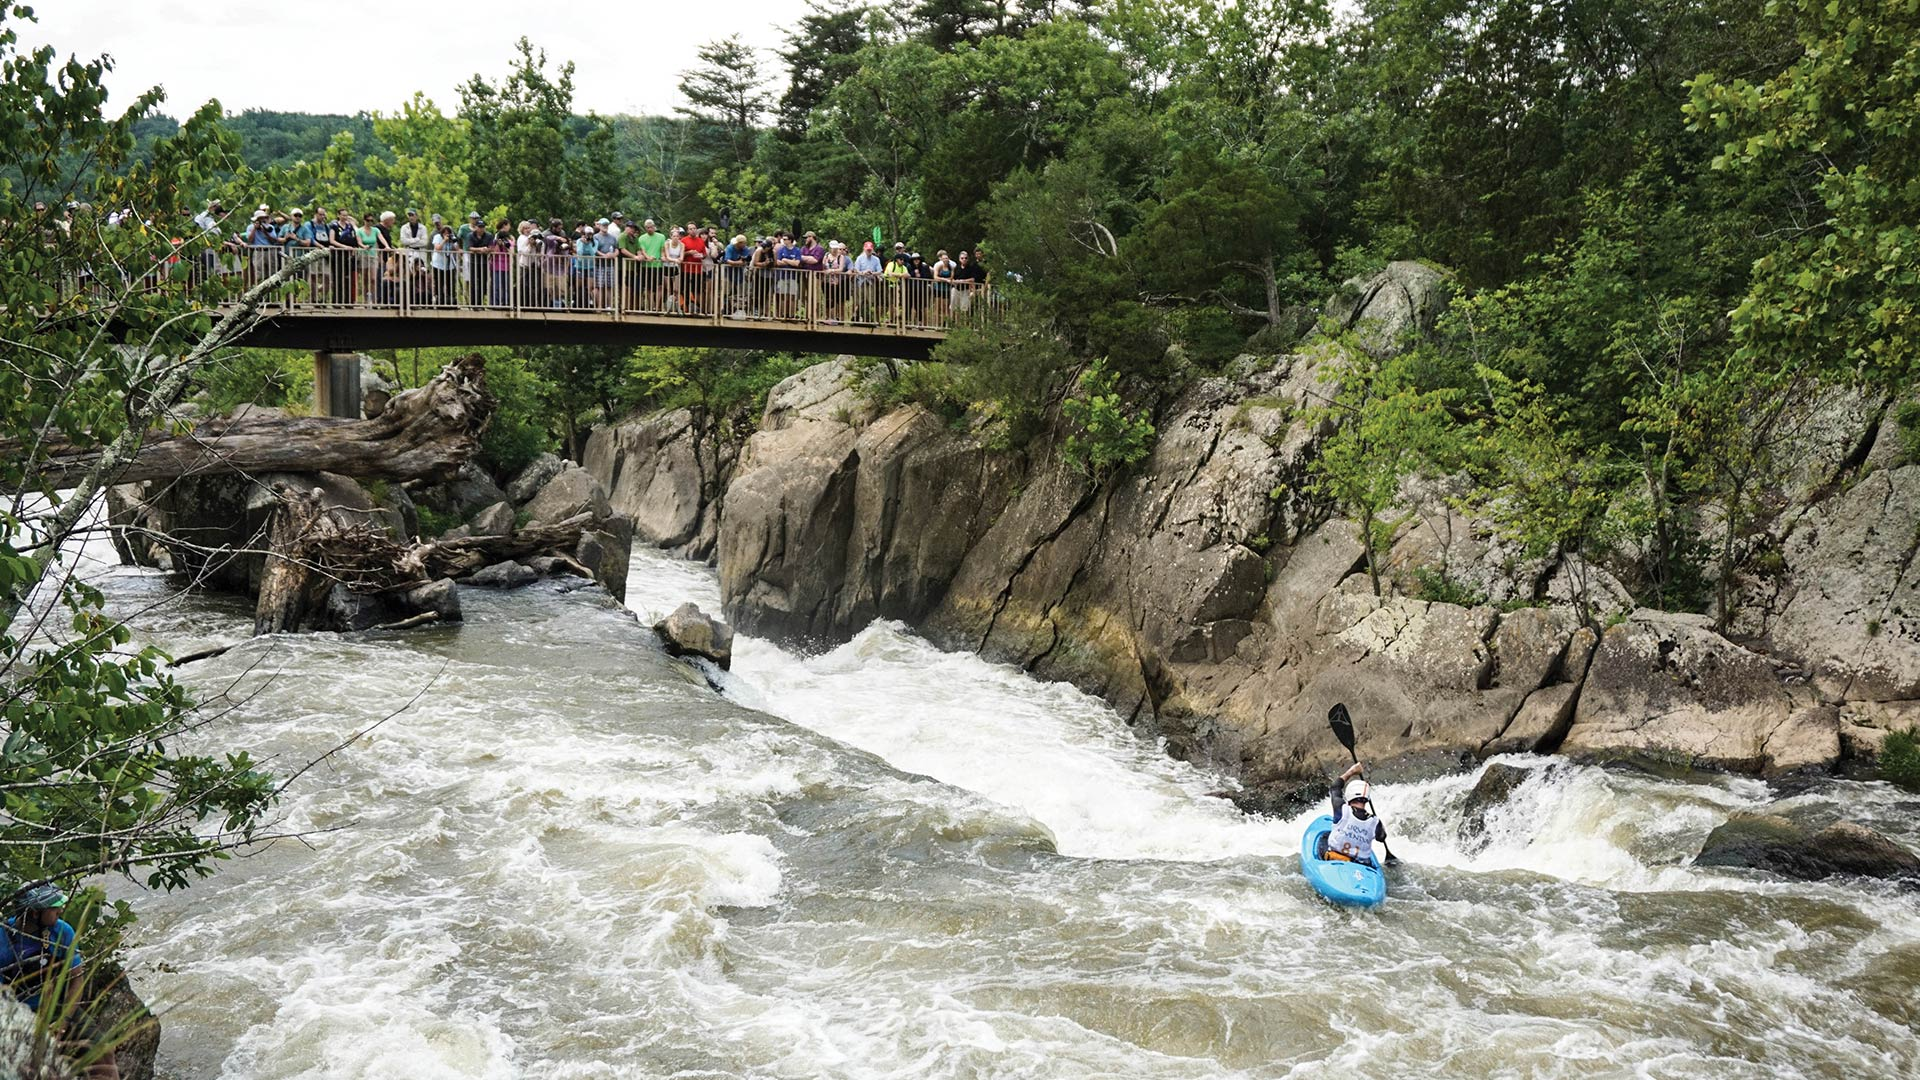 PADDLING GREAT FALLS, JUST OUTSIDE OF WASHINGTON, D.C. / PHOTO BY LAURA FARRELL